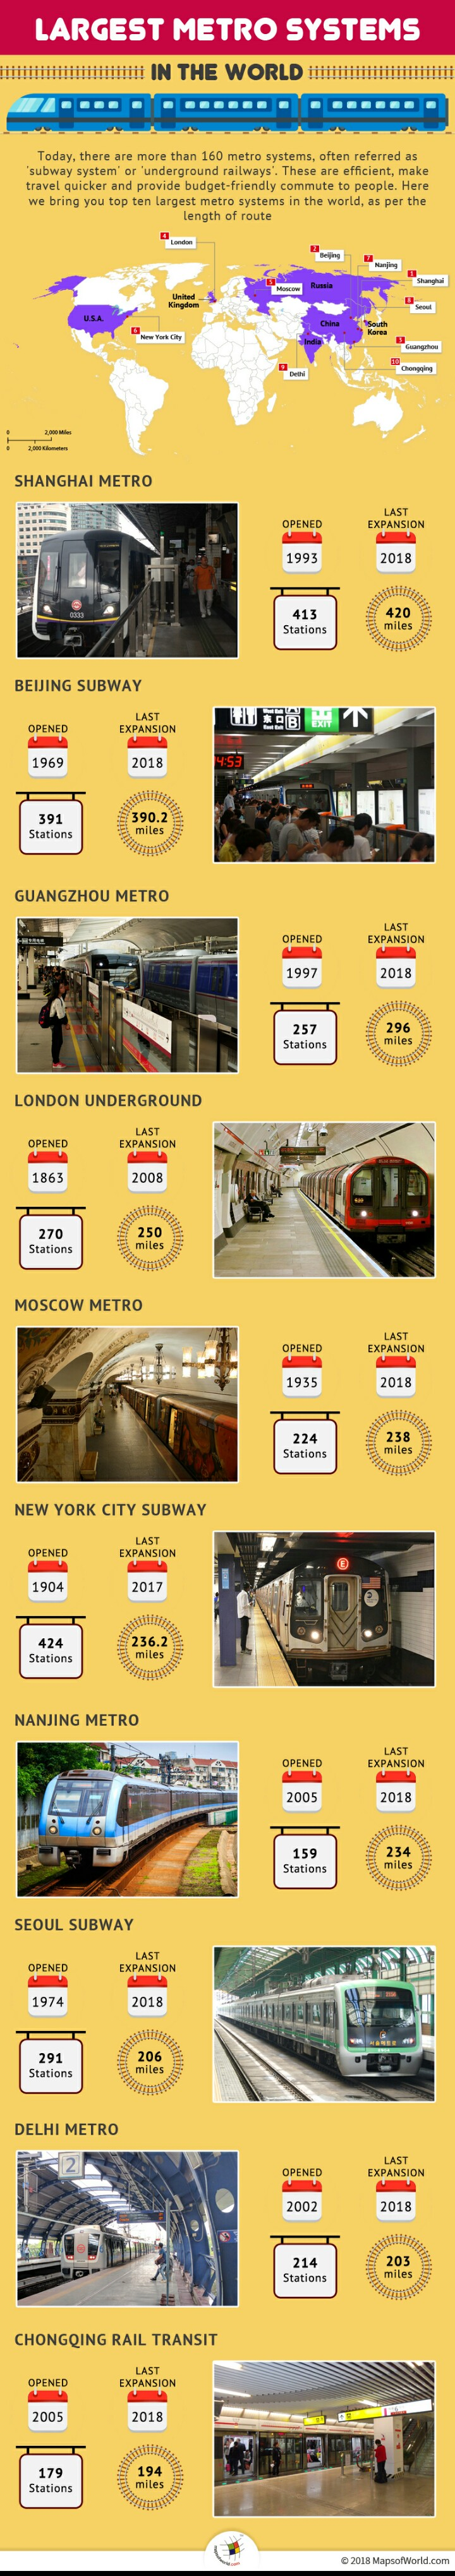 Largest Metro Systems in The World